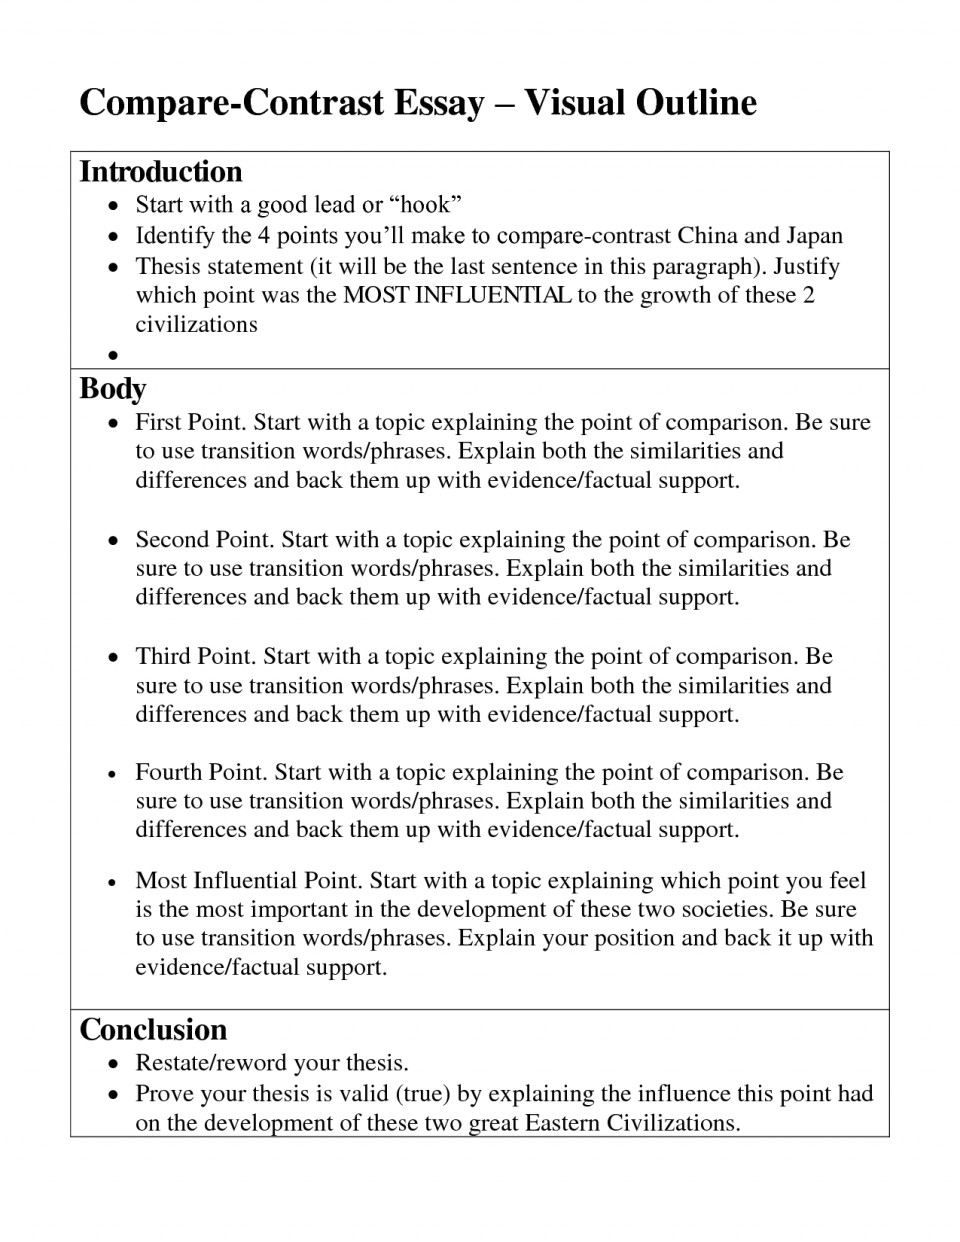 005 How To Write Compare And Contrast Essay Outstanding A Outline Powerpoint Introduction 960